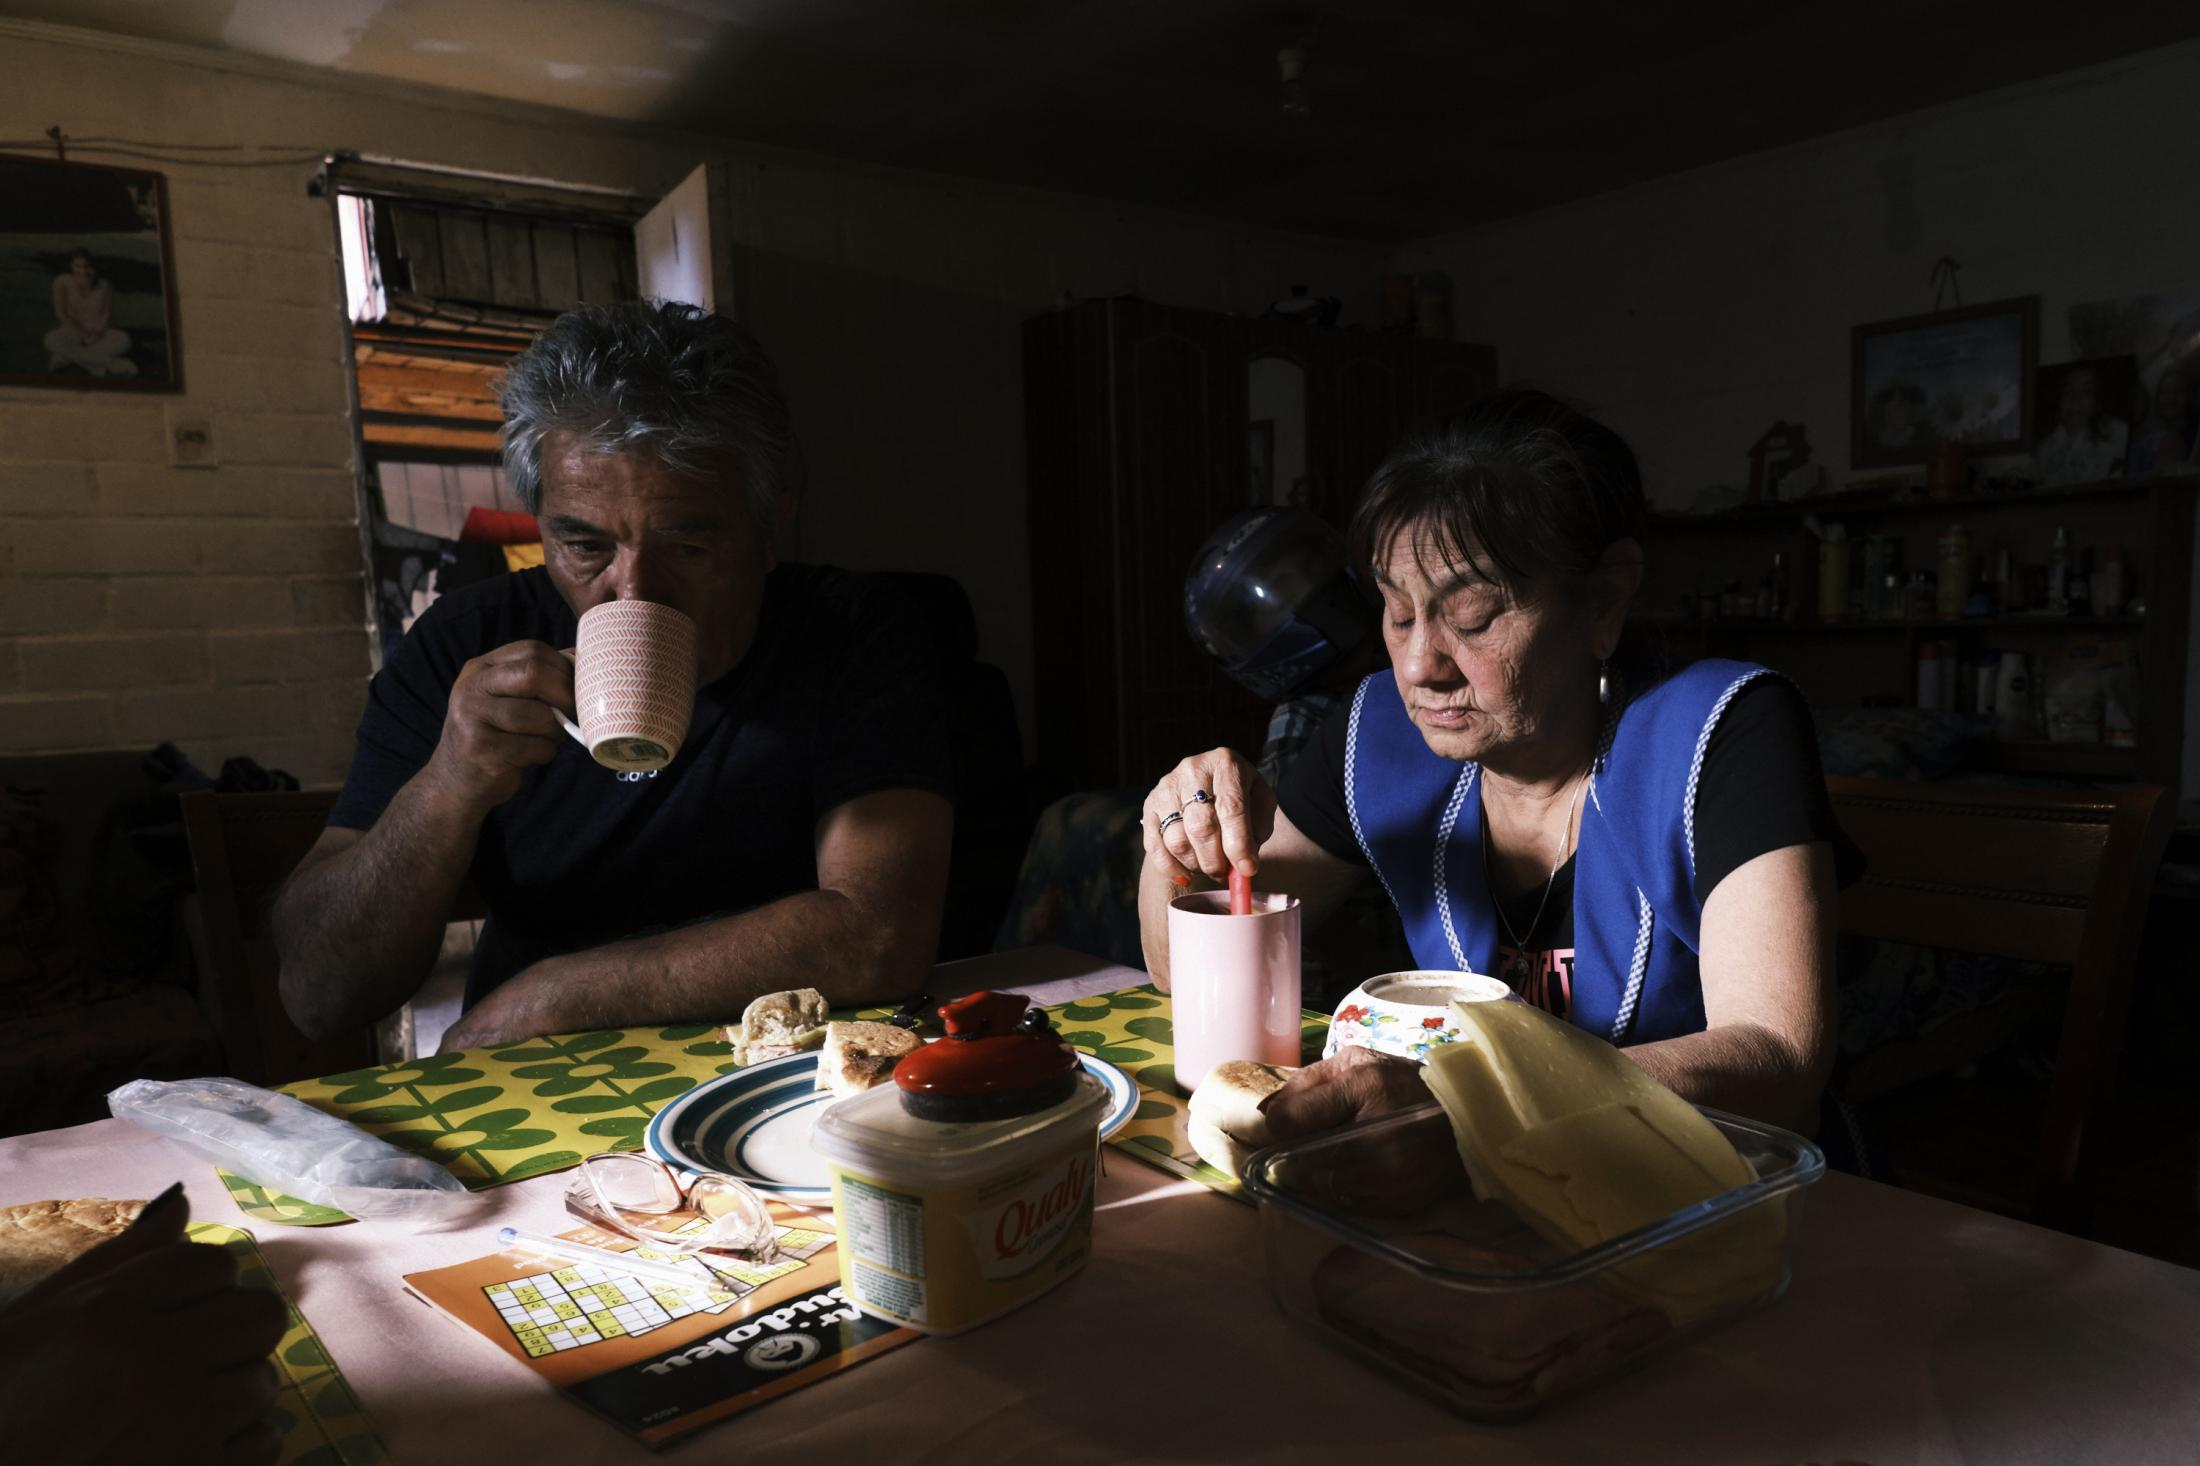 San Bernardo, Santiago, Chile, 2020. Paula Lorca's parents, Ramón and Maria, drink coffee with the family. Just before she died, Paula had dinner at this table with her parents.